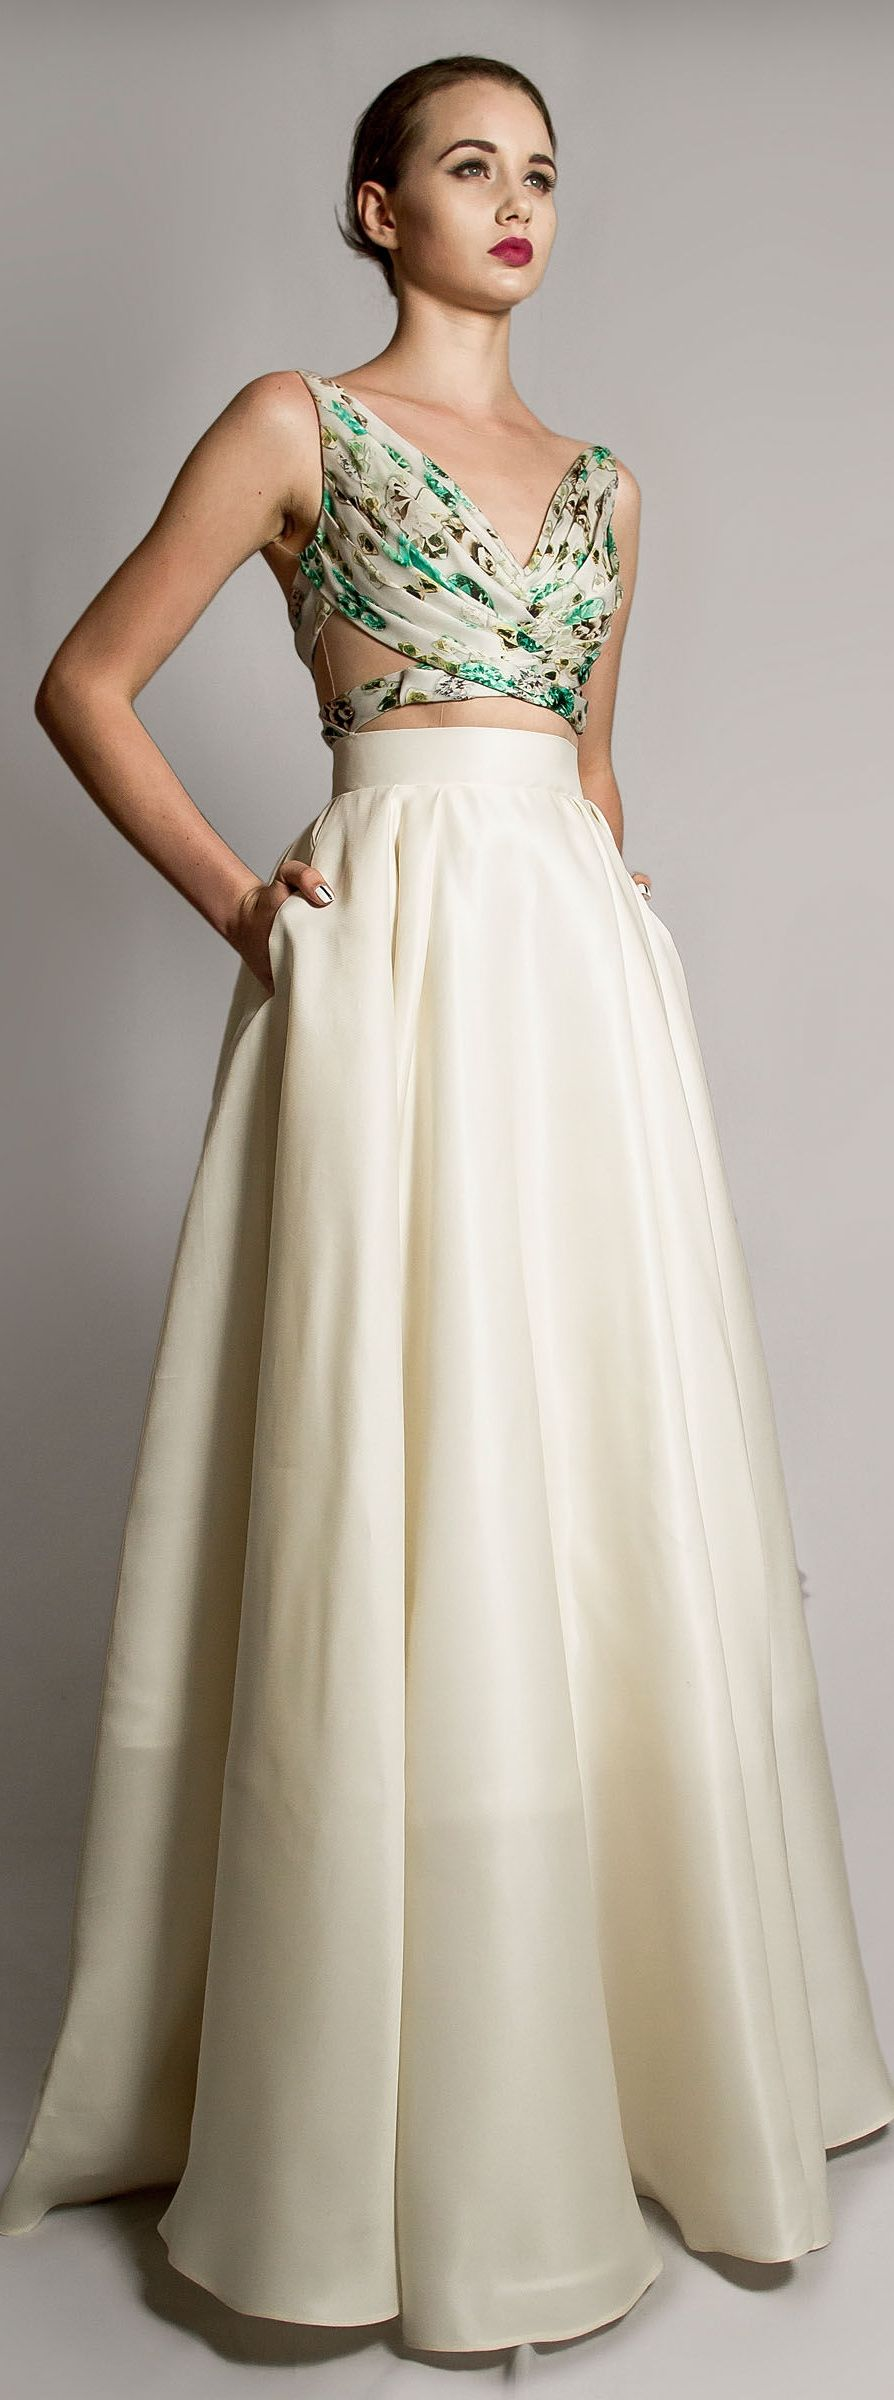 Blouse style reception ideas pinterest house gowns and black